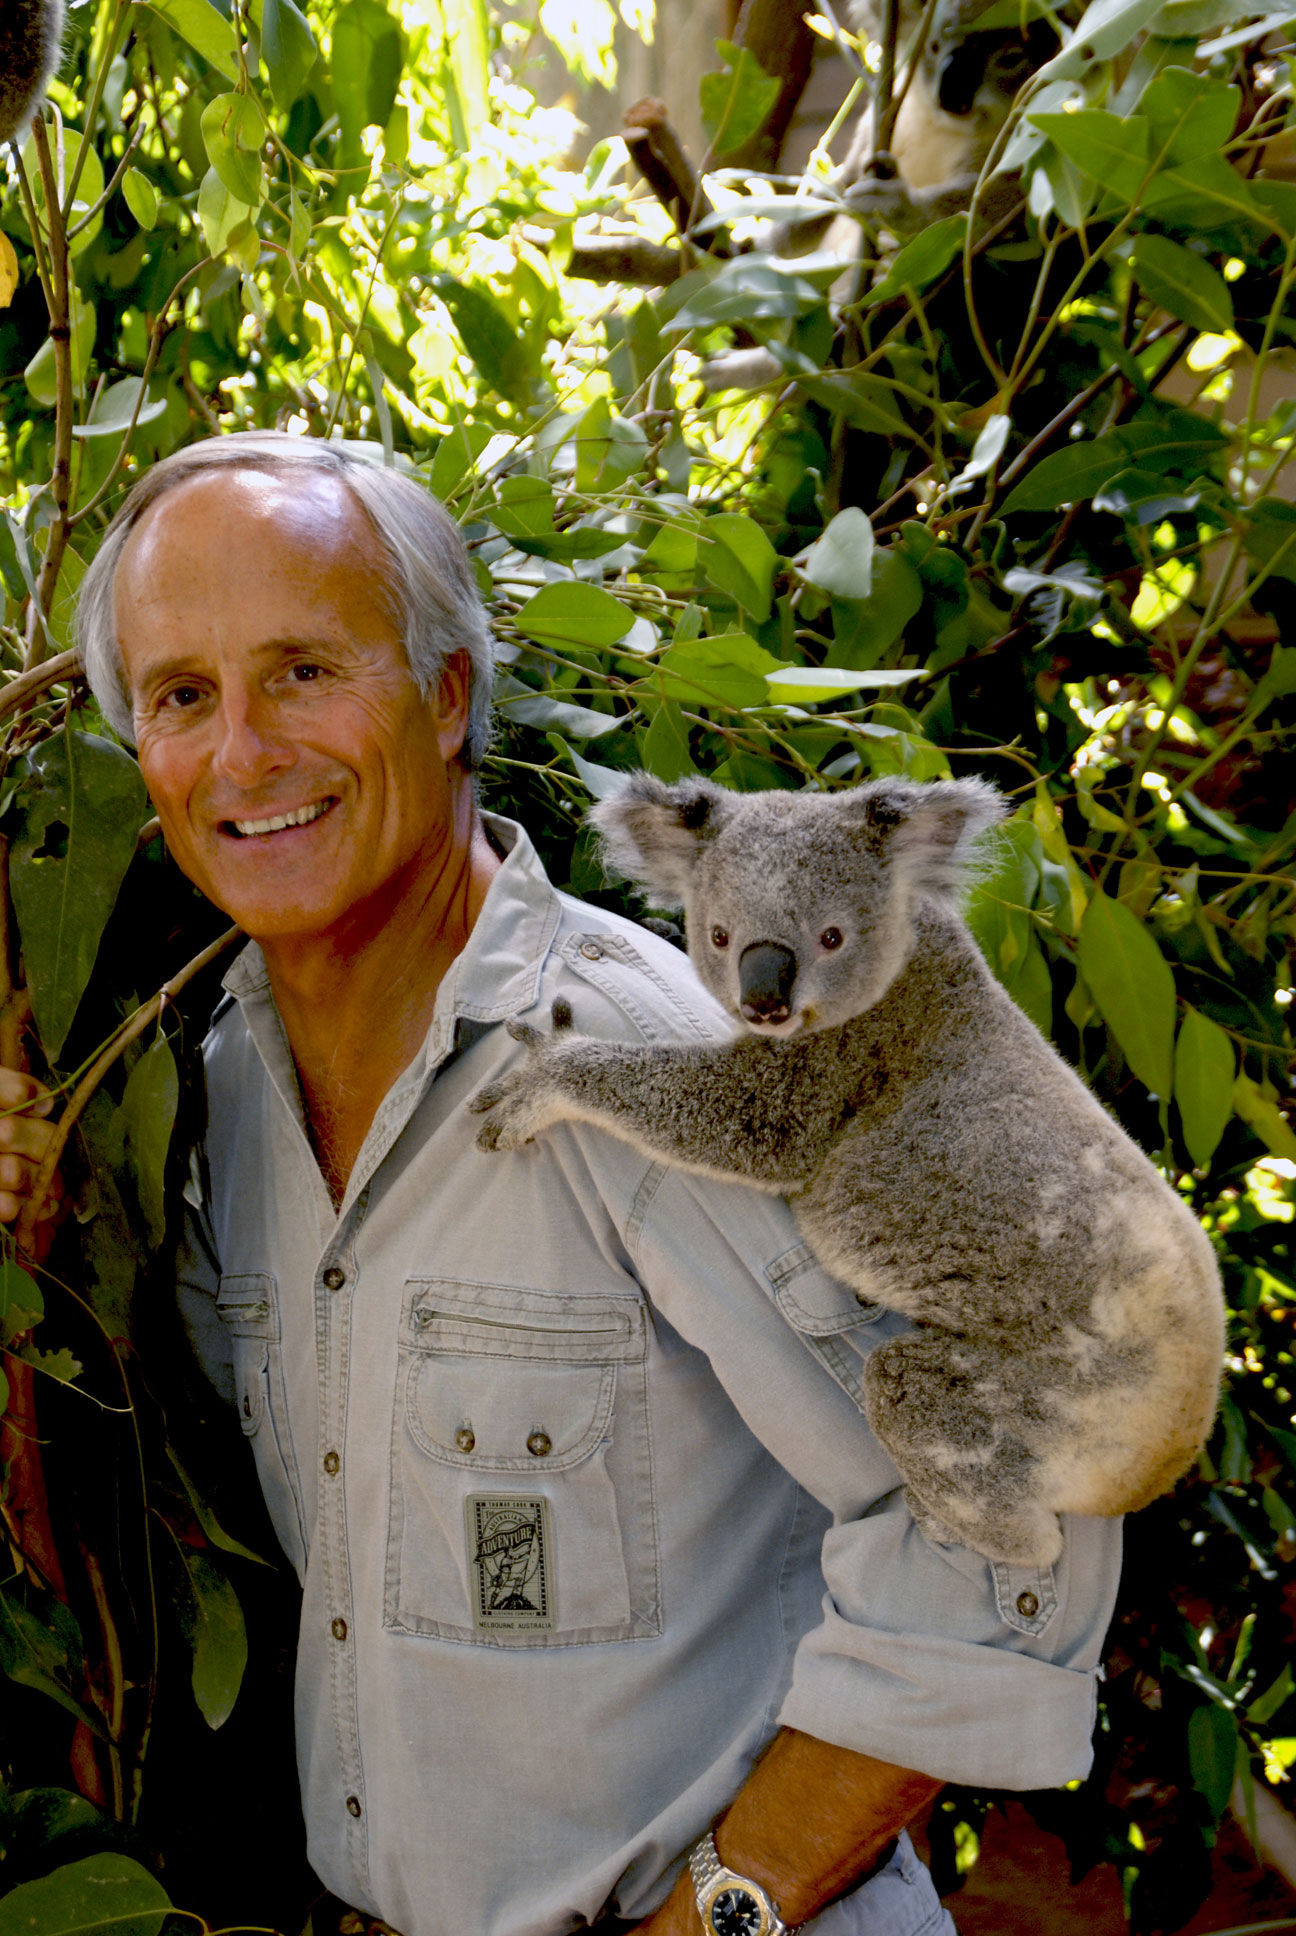 /_uploaded_files/jack-hanna_with_baby_koala_new-2.jpg